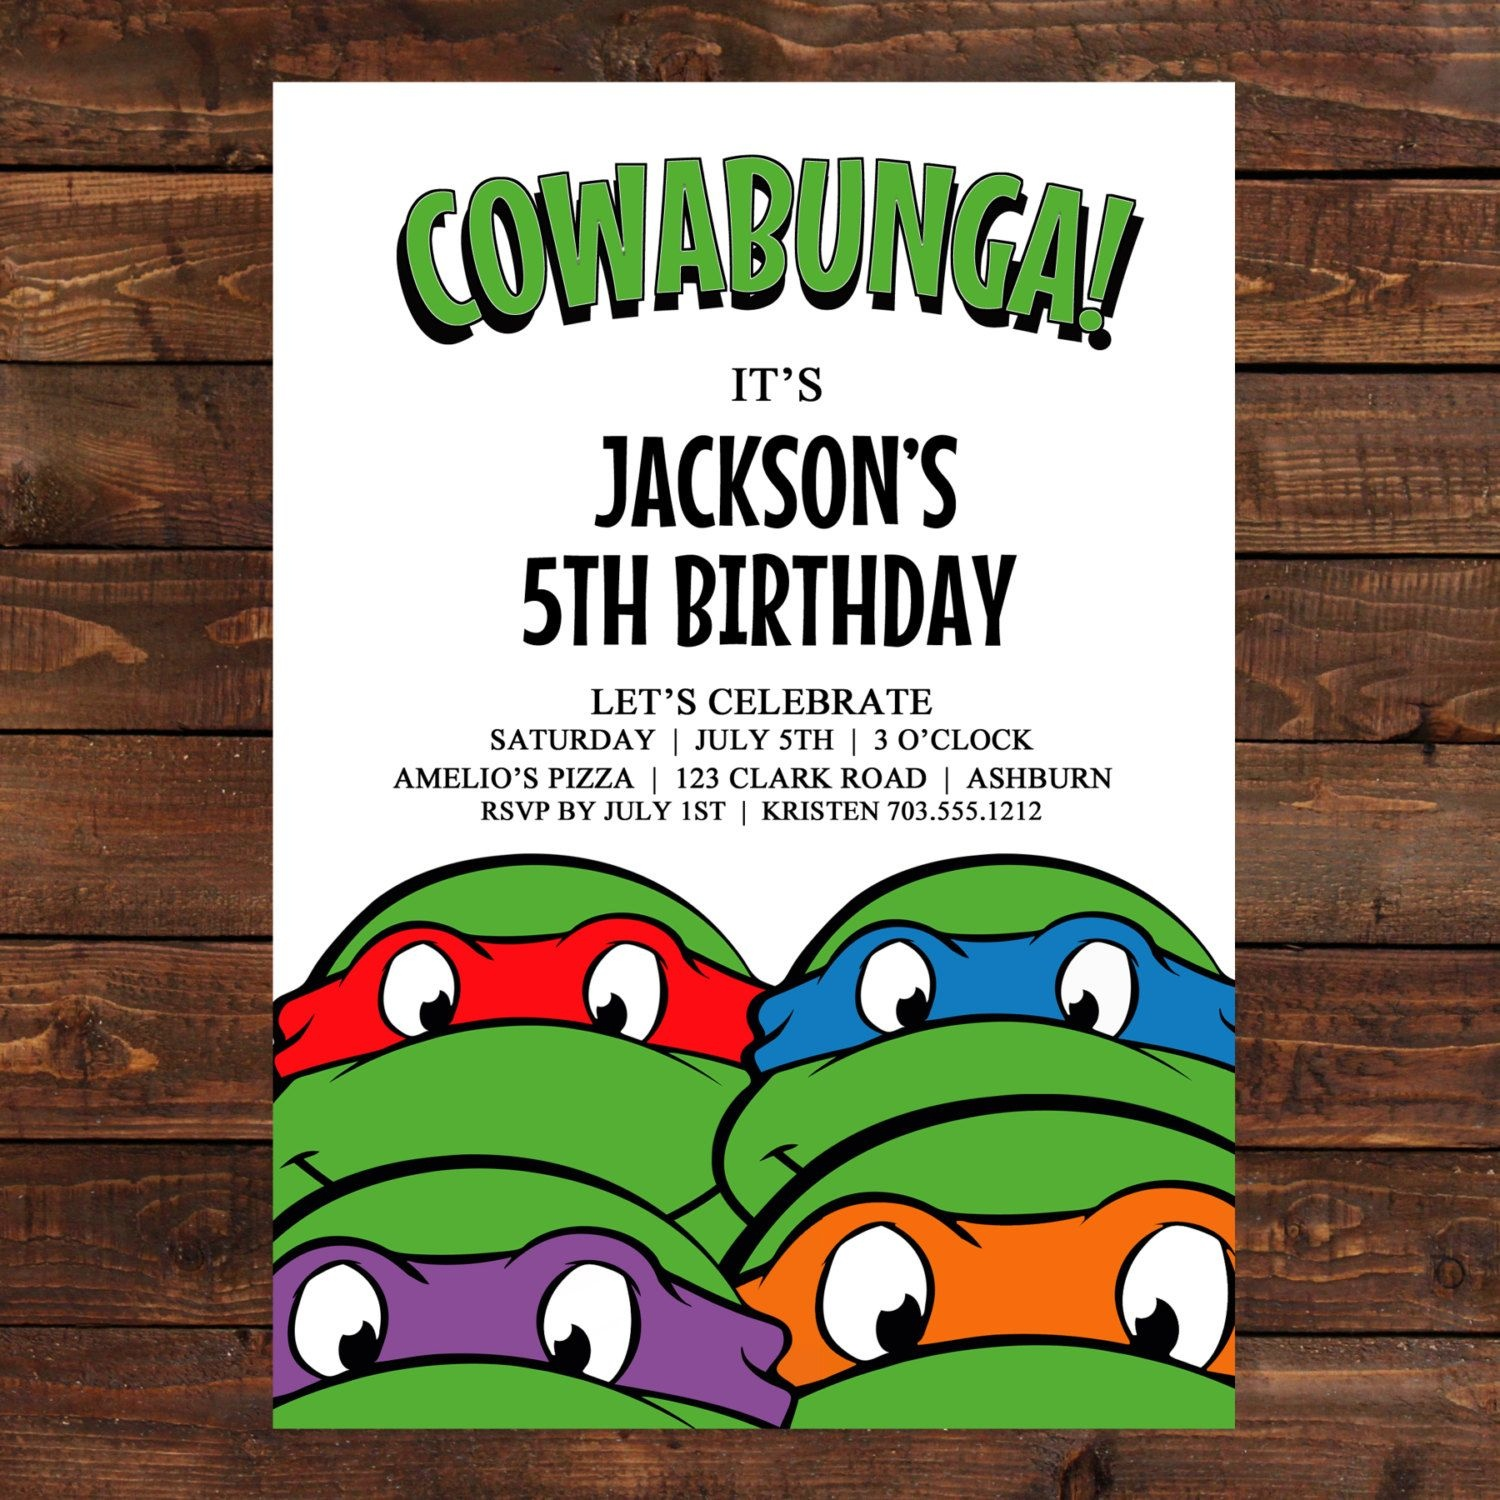 Free Printable Ninja Turtle Birthday Invitations | Želve | Convites - Free Printable Ninja Turtle Birthday Invitations